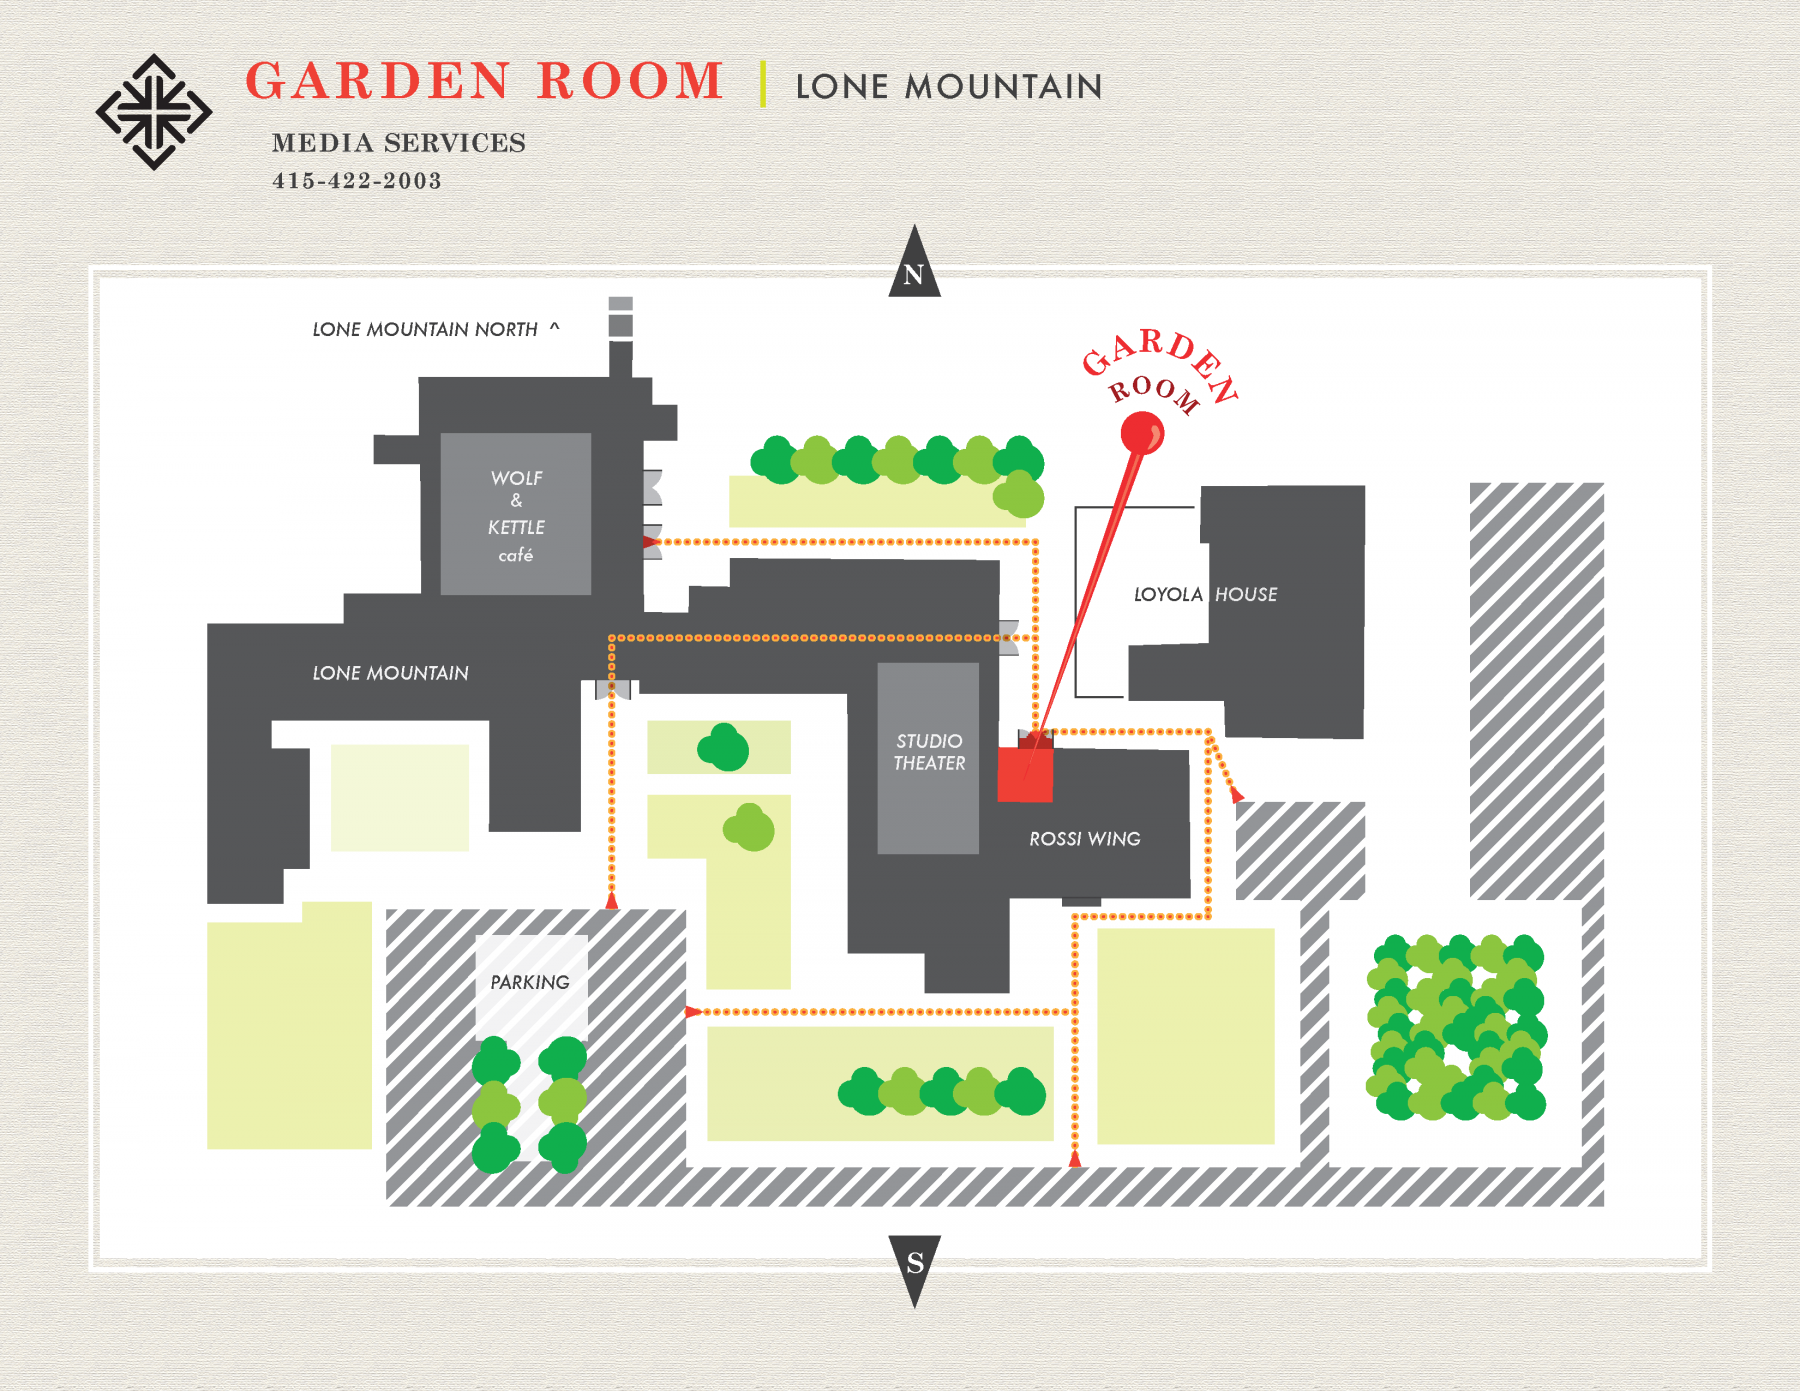 Map to Media Services, located at the Lone Mountain Garden Room